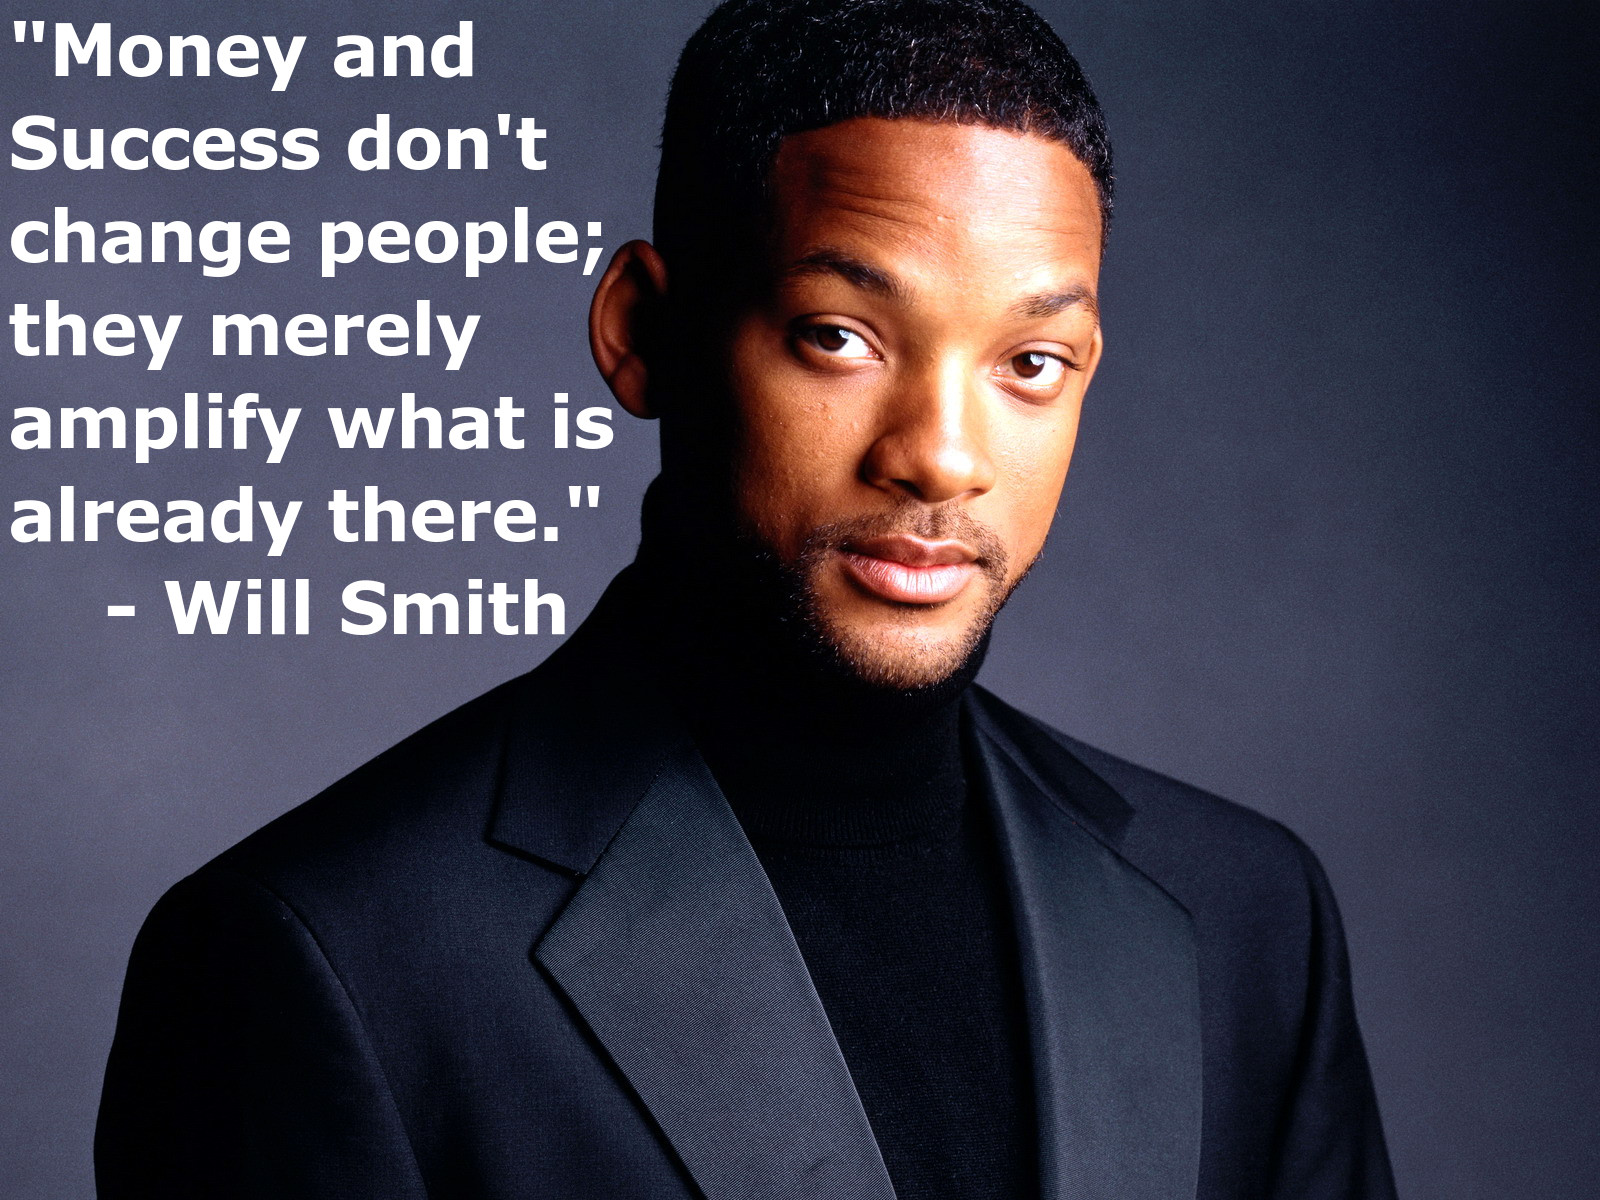 Will Smith Quote on Money and Success